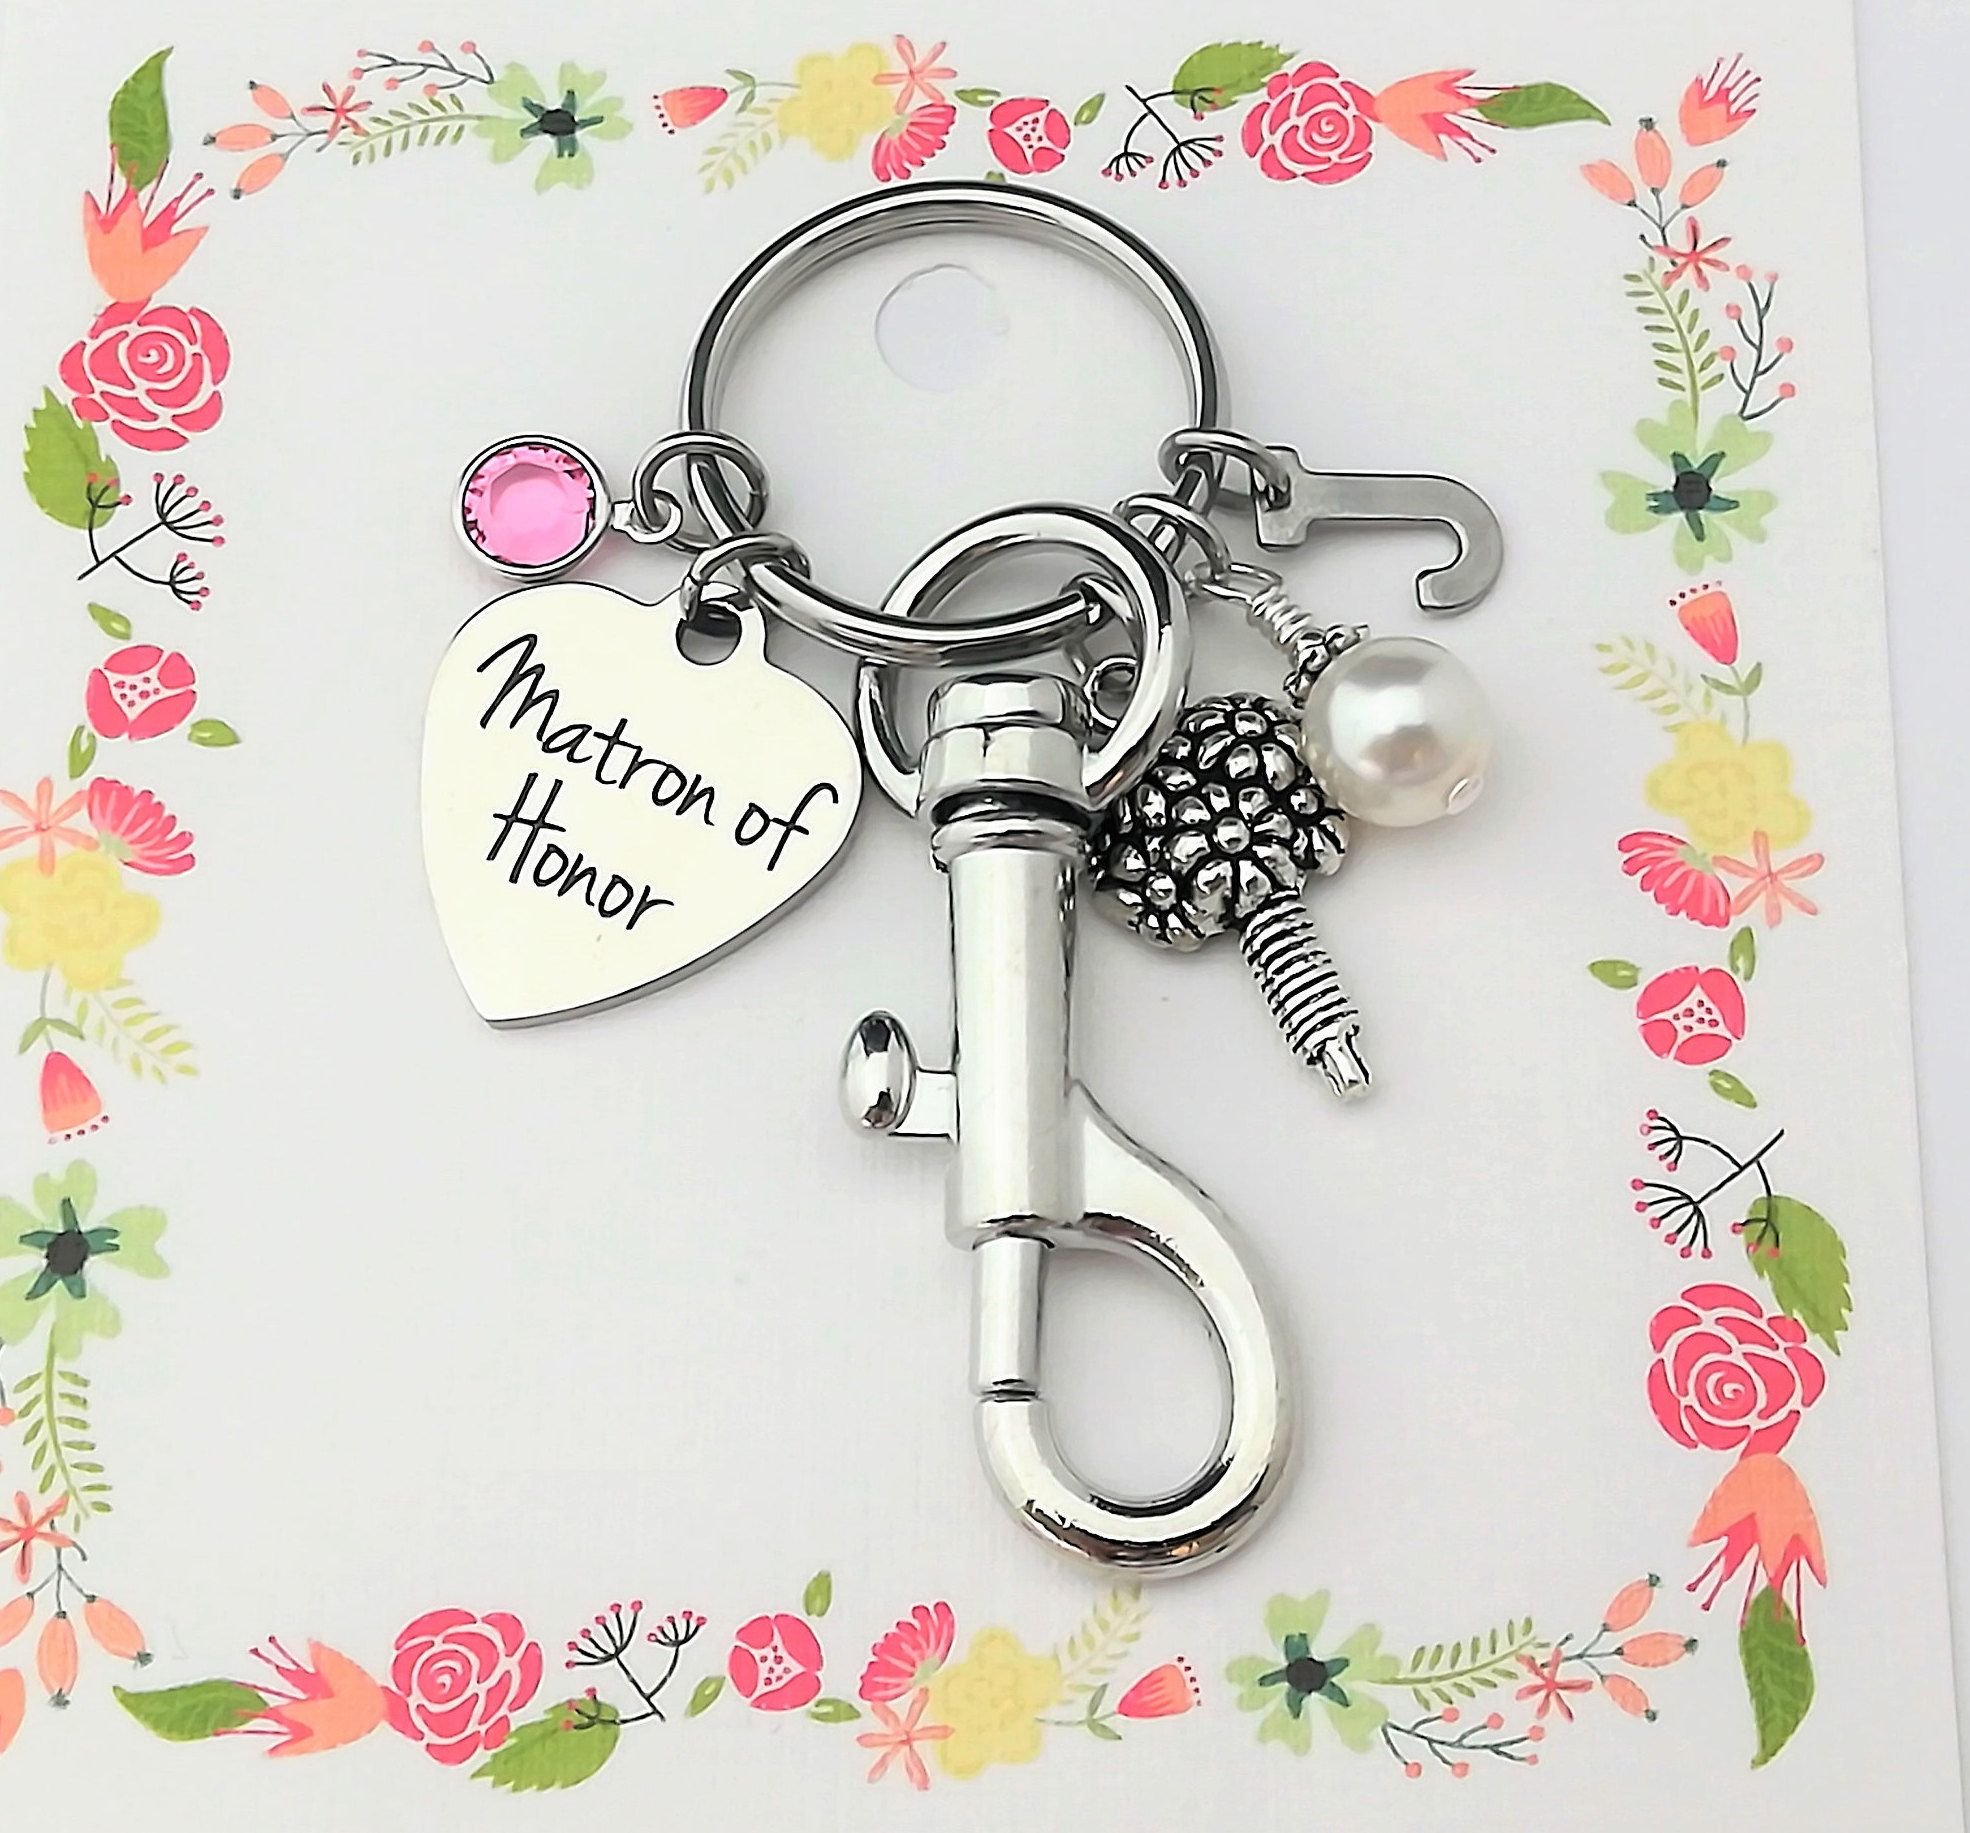 Matron of honor proposal matron of honor key chain will